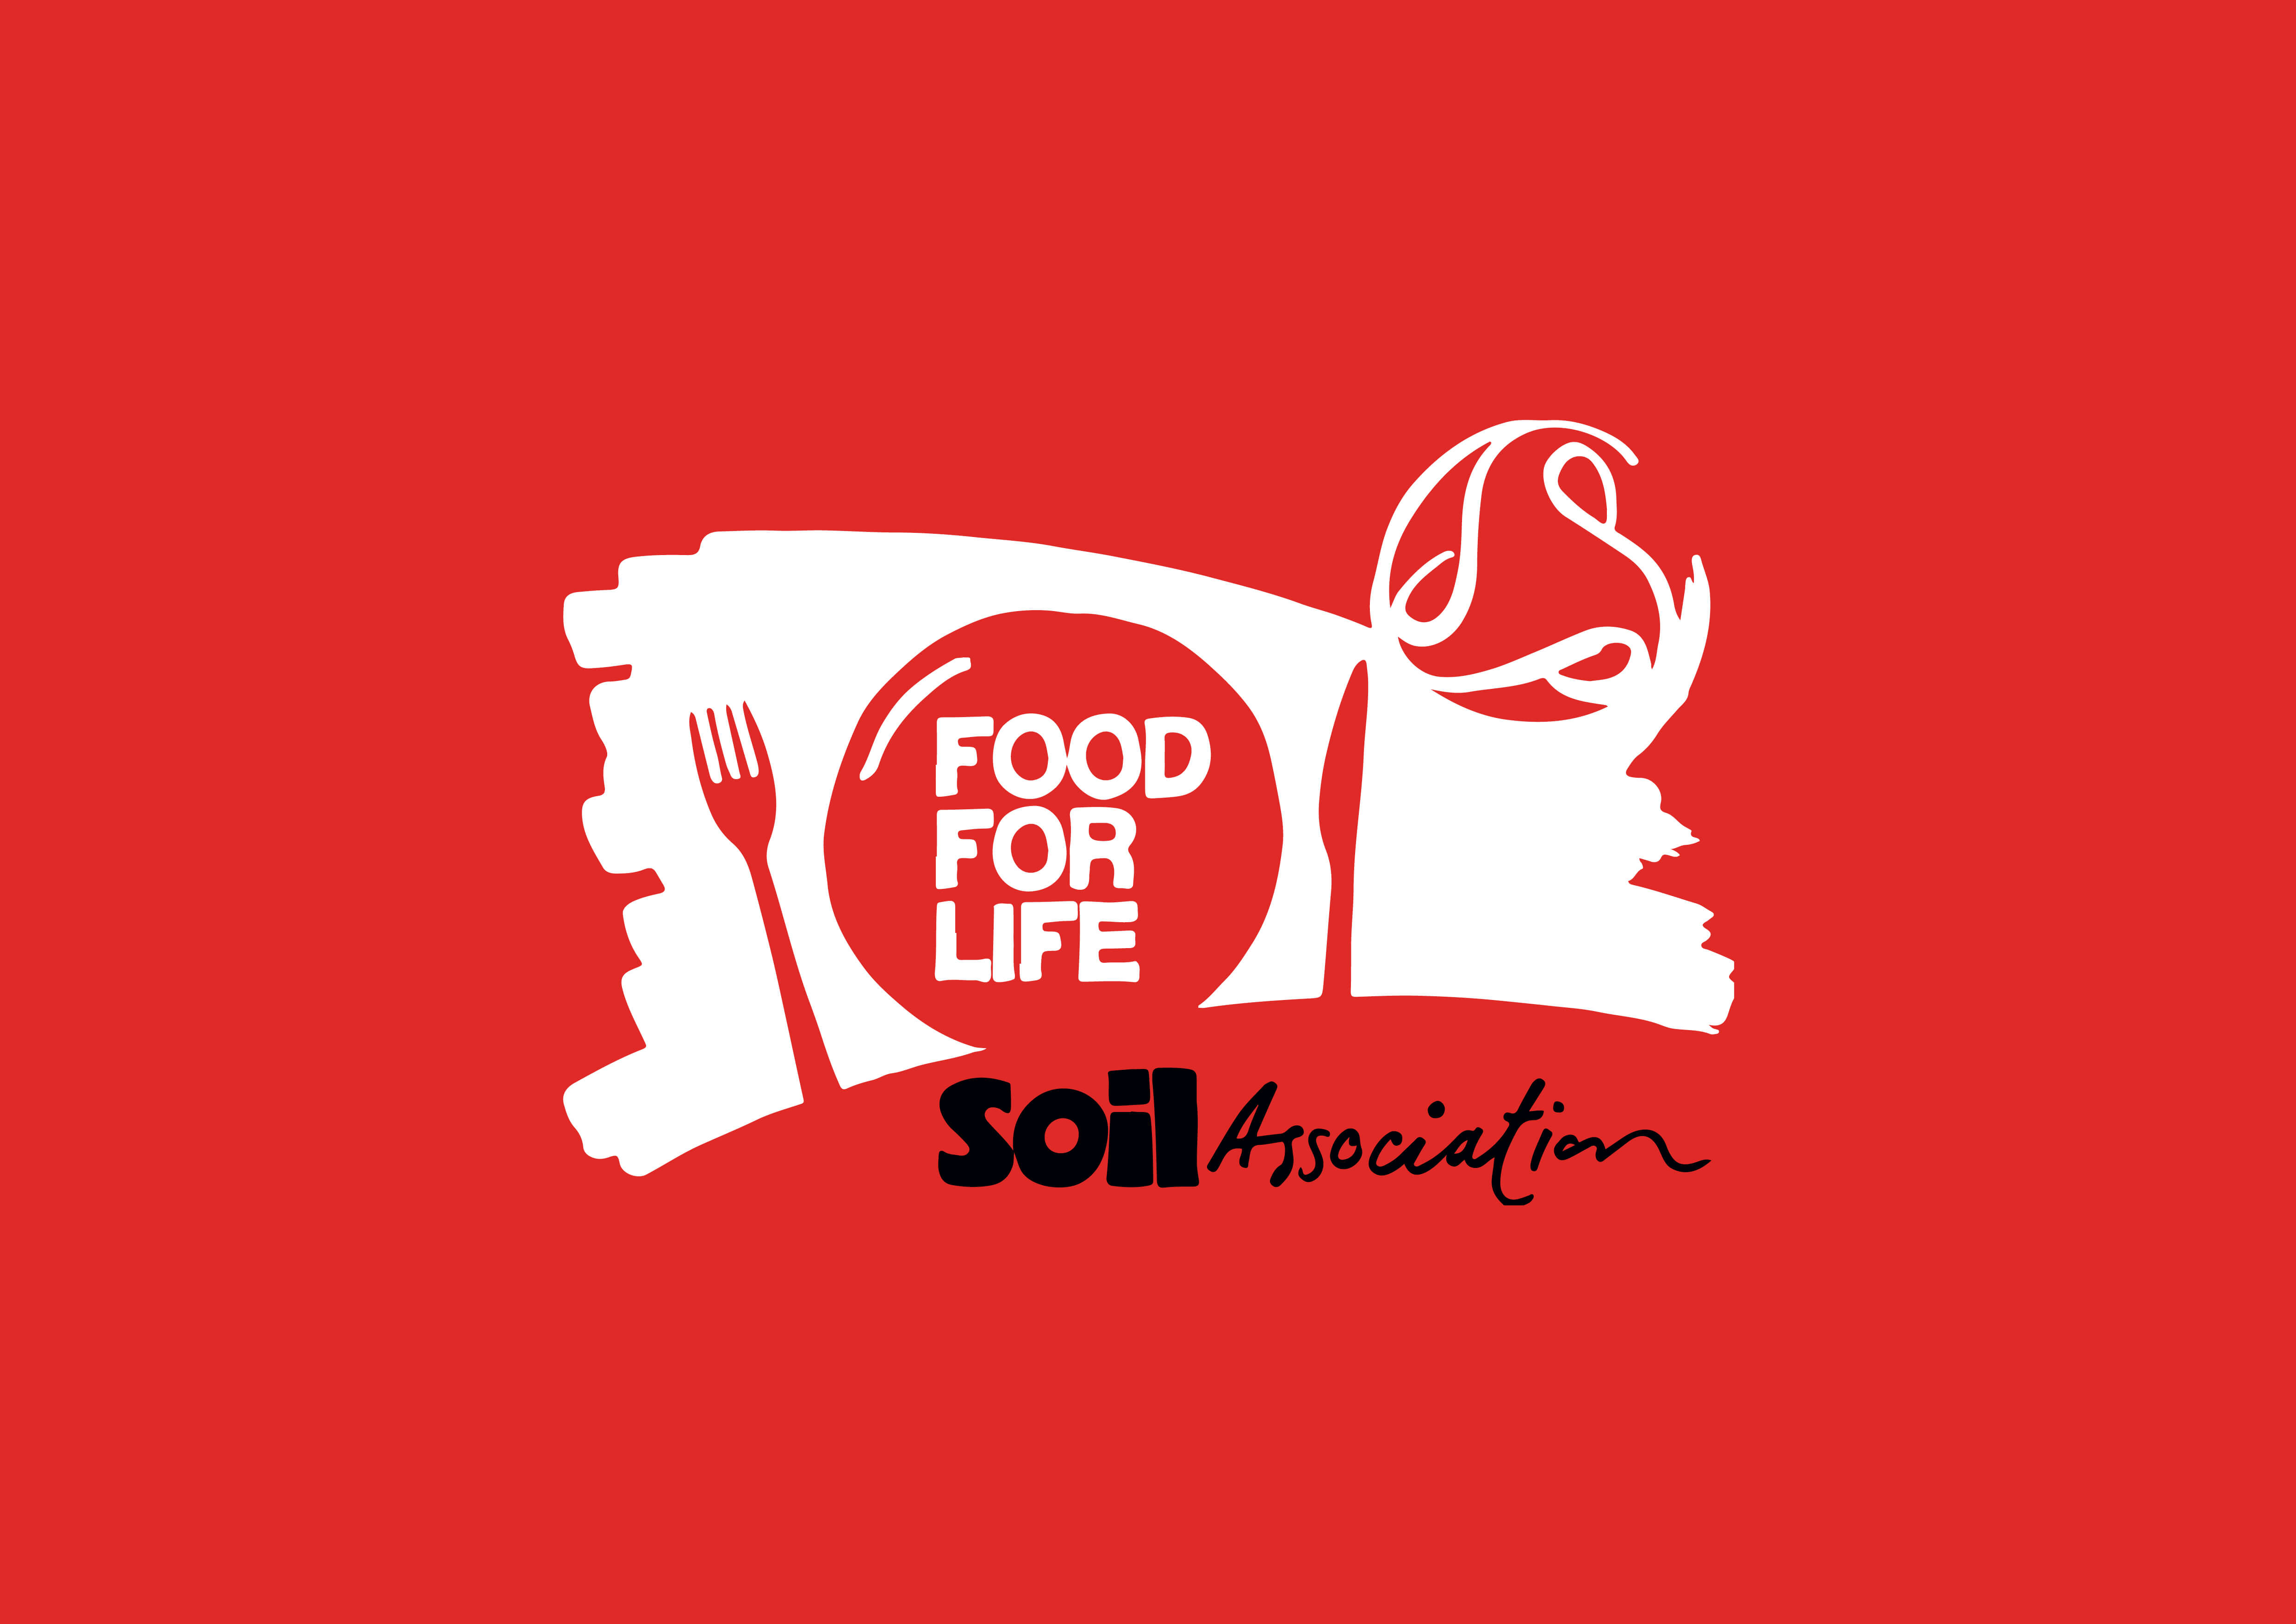 Food For Life is about making good food the easy choice for everyone – making healthy, tasty and sustainable meals the norm for all to enjoy, reconnecting people with where their food comes from, teaching them how it's grown and cooked, and championing the importance of well-sourced ingredients. They work with schools, nurseries, hospitals and care homes, helping them build knowledge and skills through a 'whole setting approach'. This engages children and parents, staff, patients and visitors, caterers, carers and the wider community to create a powerful voice for long-term change.